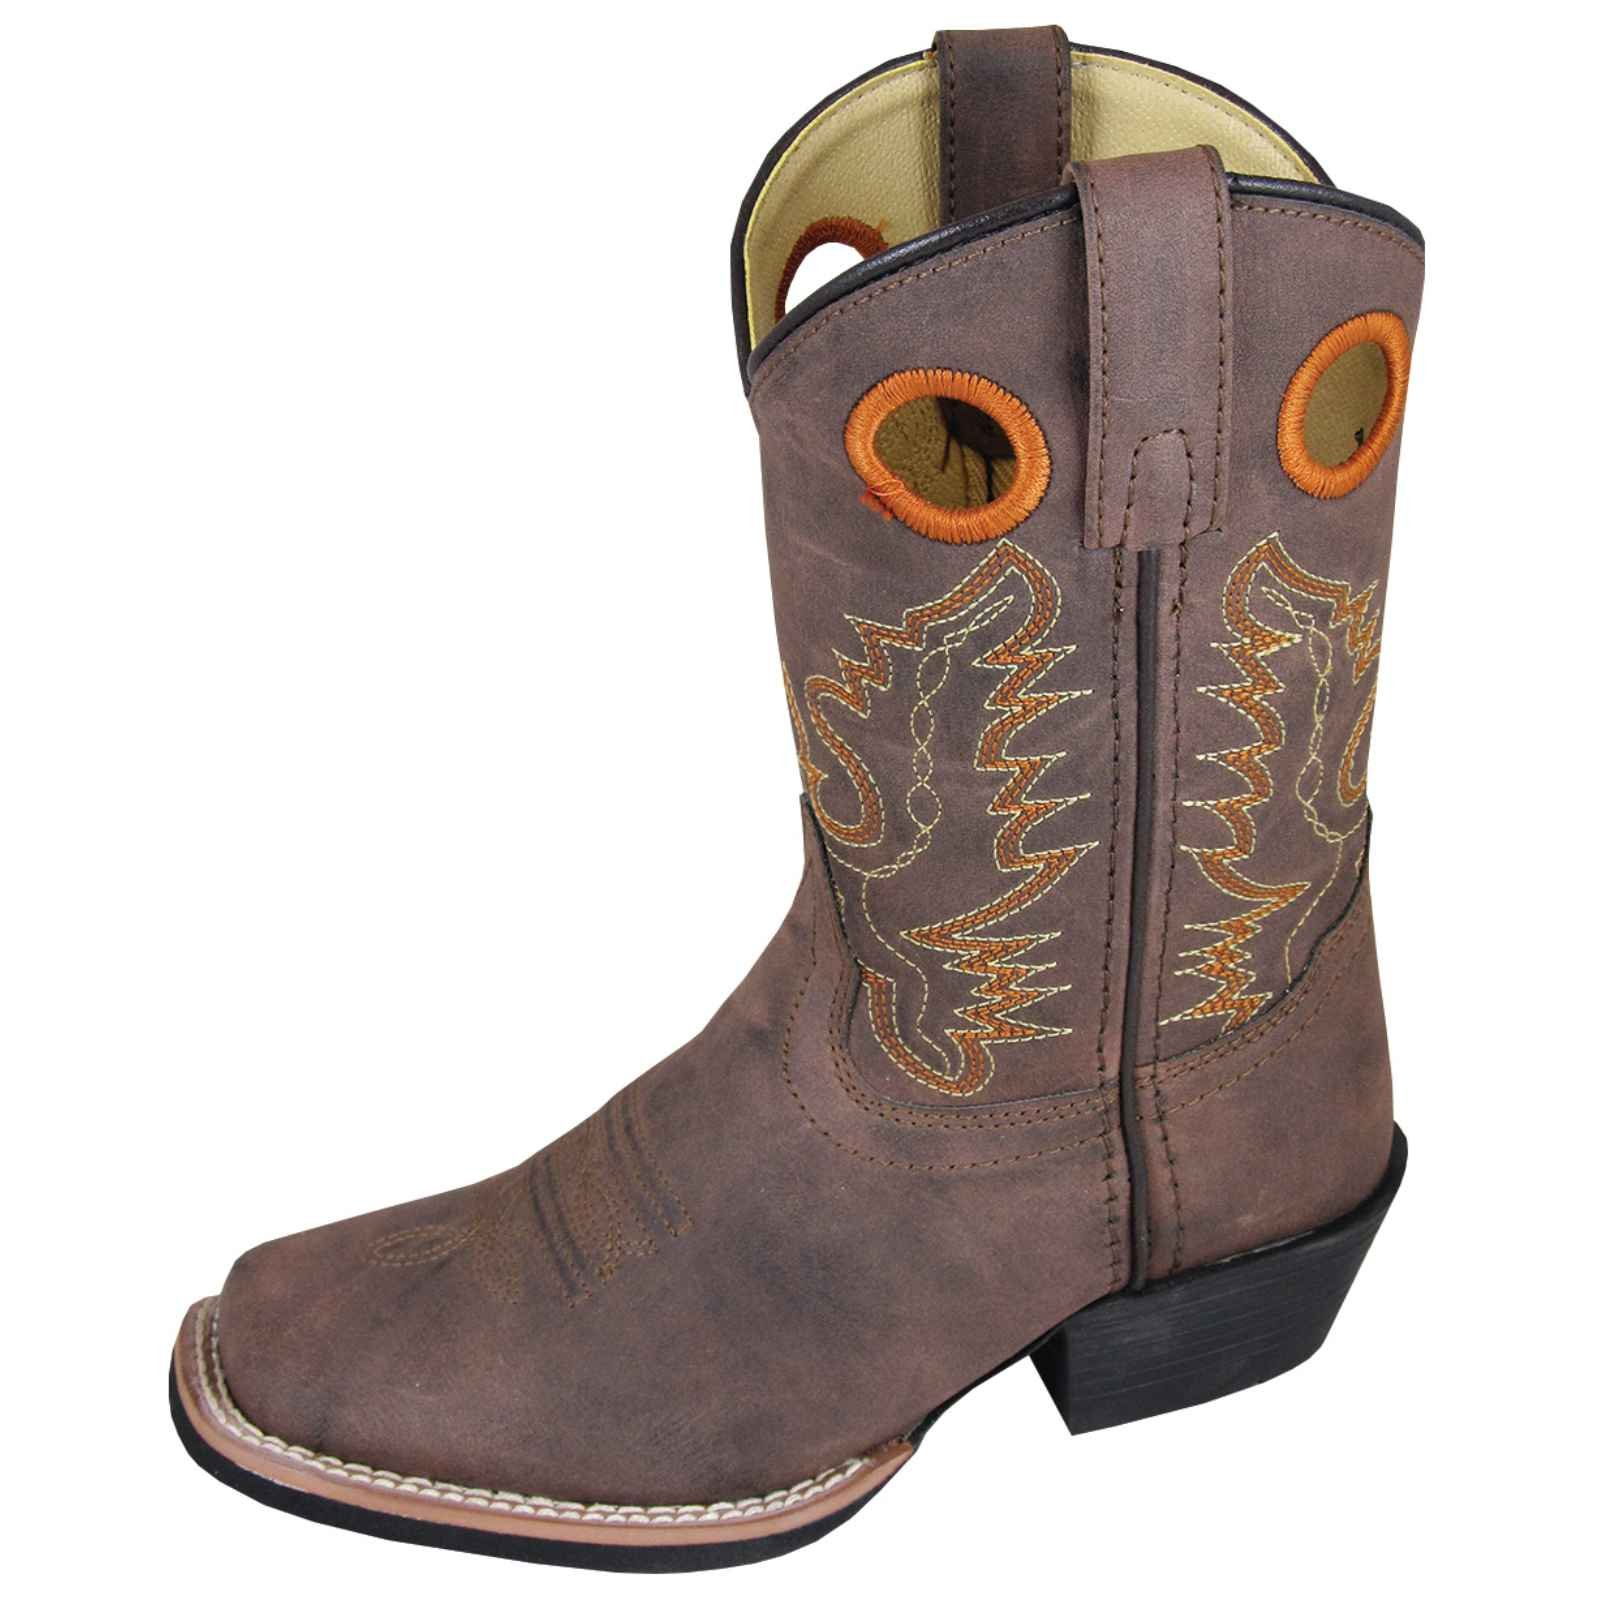 Smoky Mountain Childs Memphis Sq Toe Boot Brown Distress by Smoky Mountain Boots